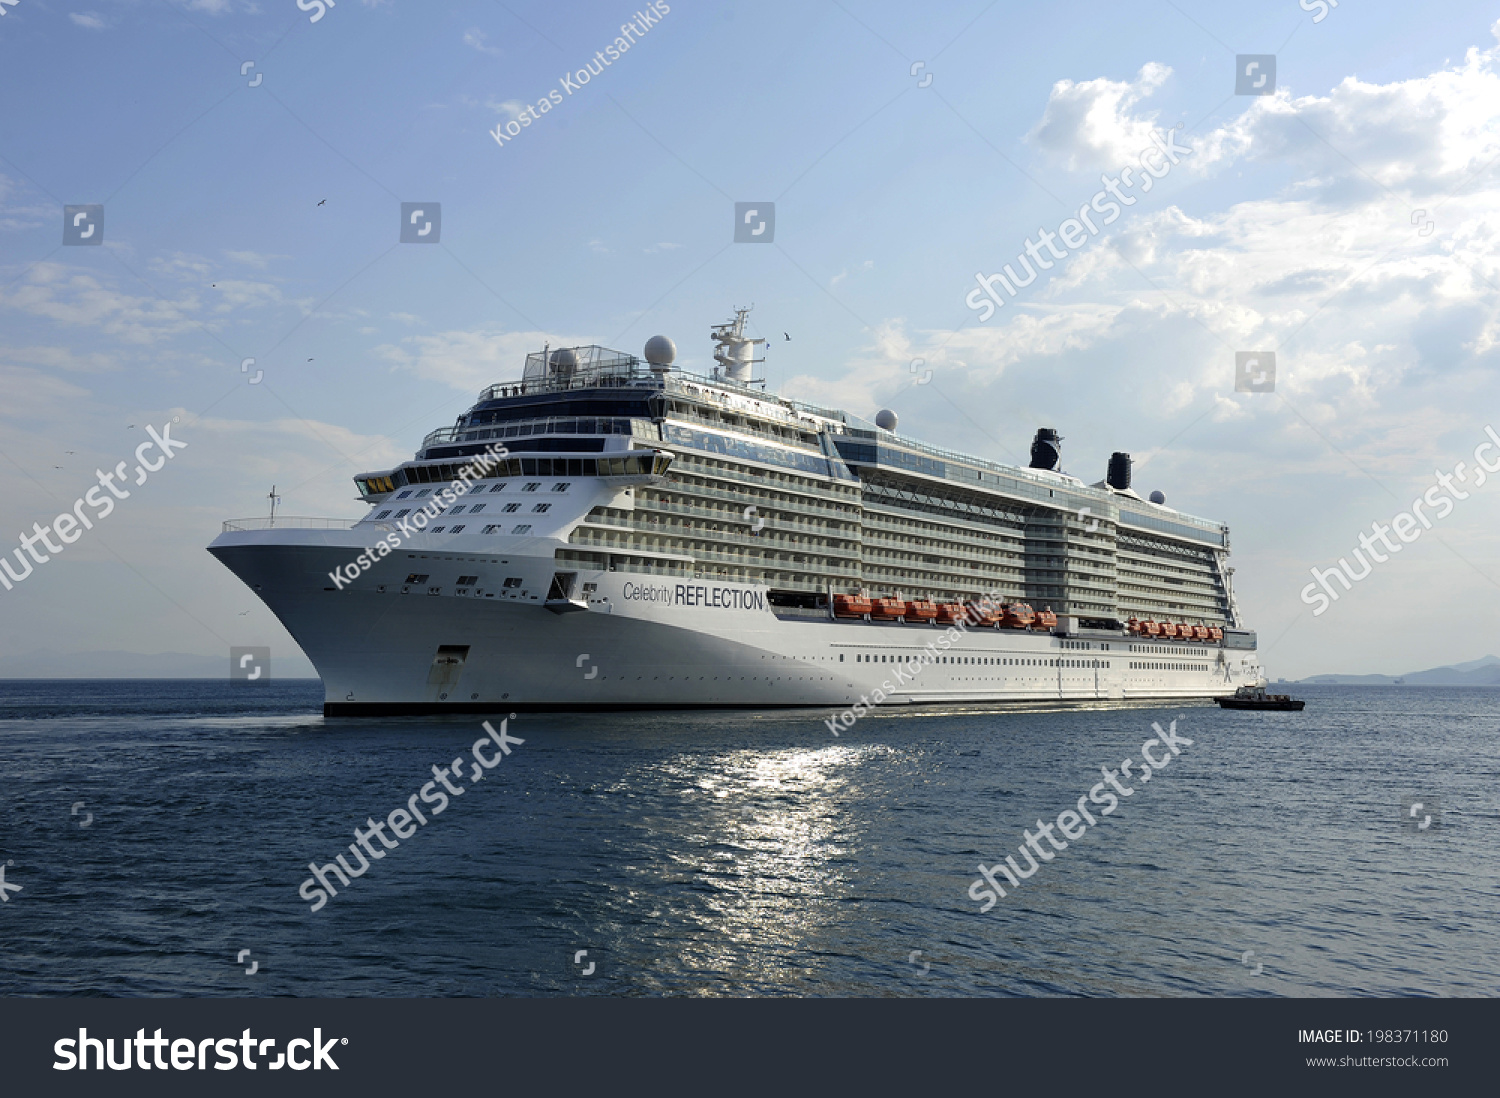 Who owns which cruise line? - Ask a Cruise Question ...